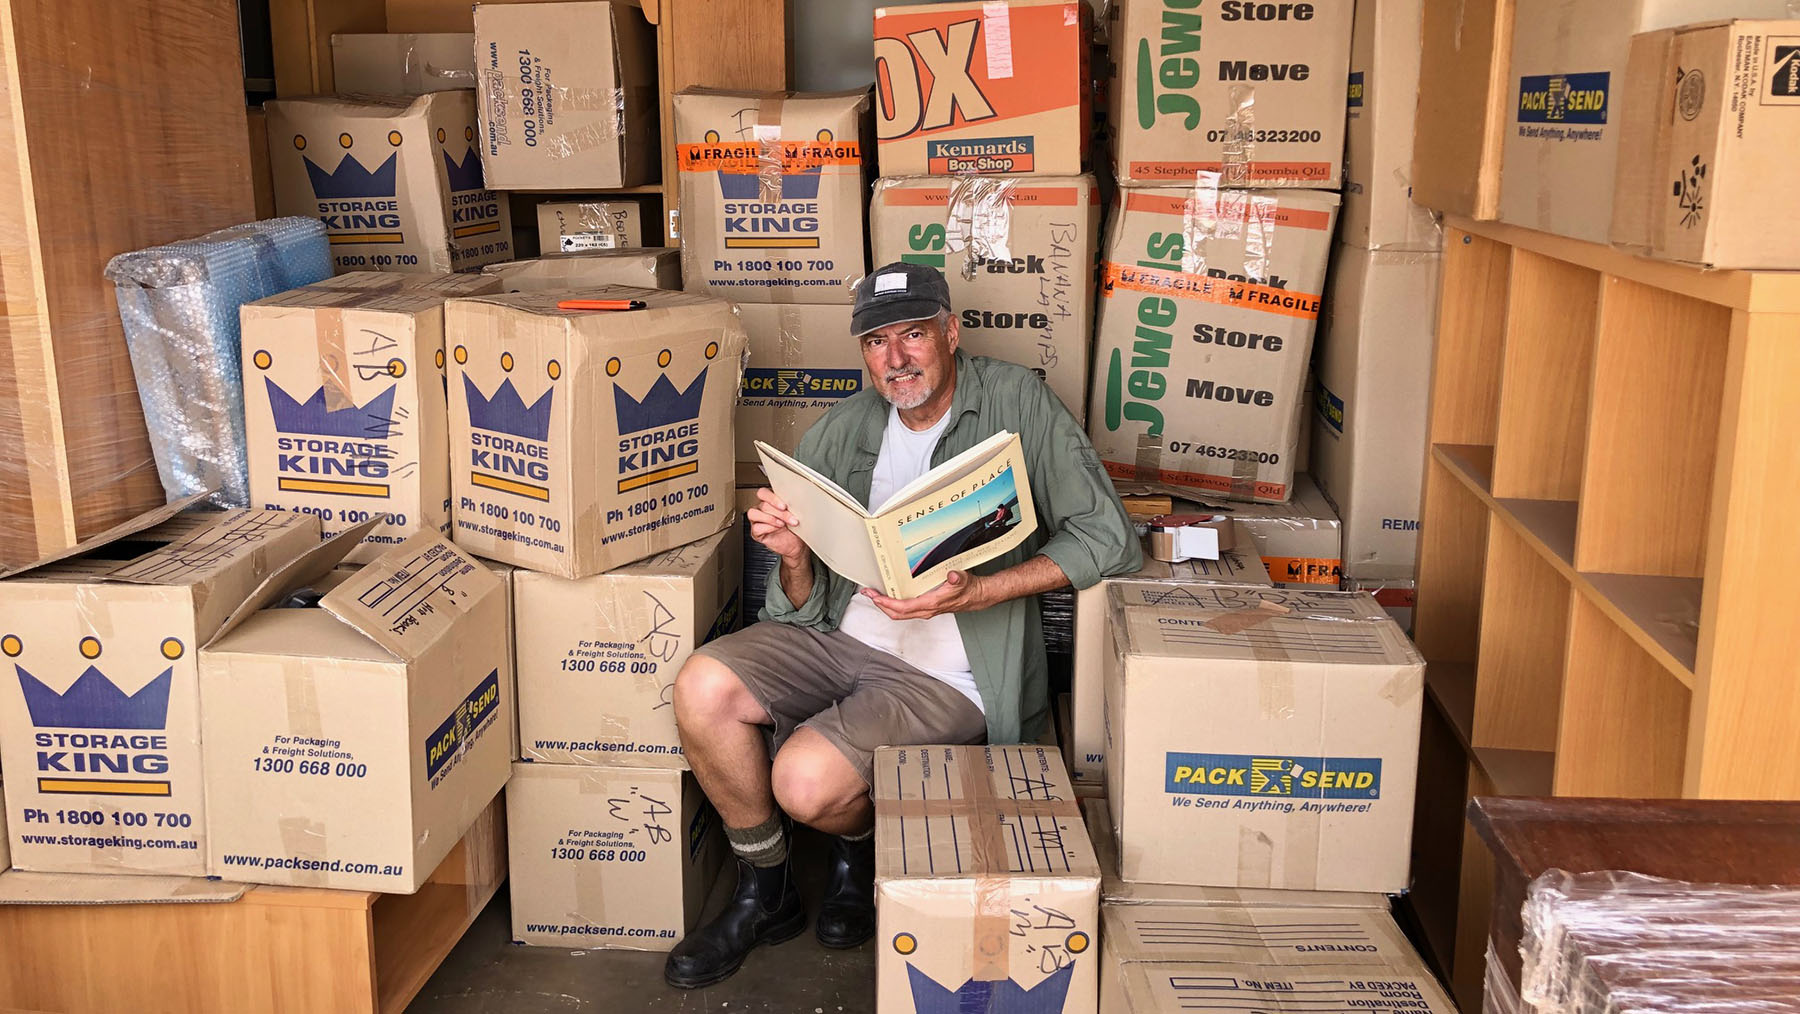 In the storage shed opening boxes looking for books